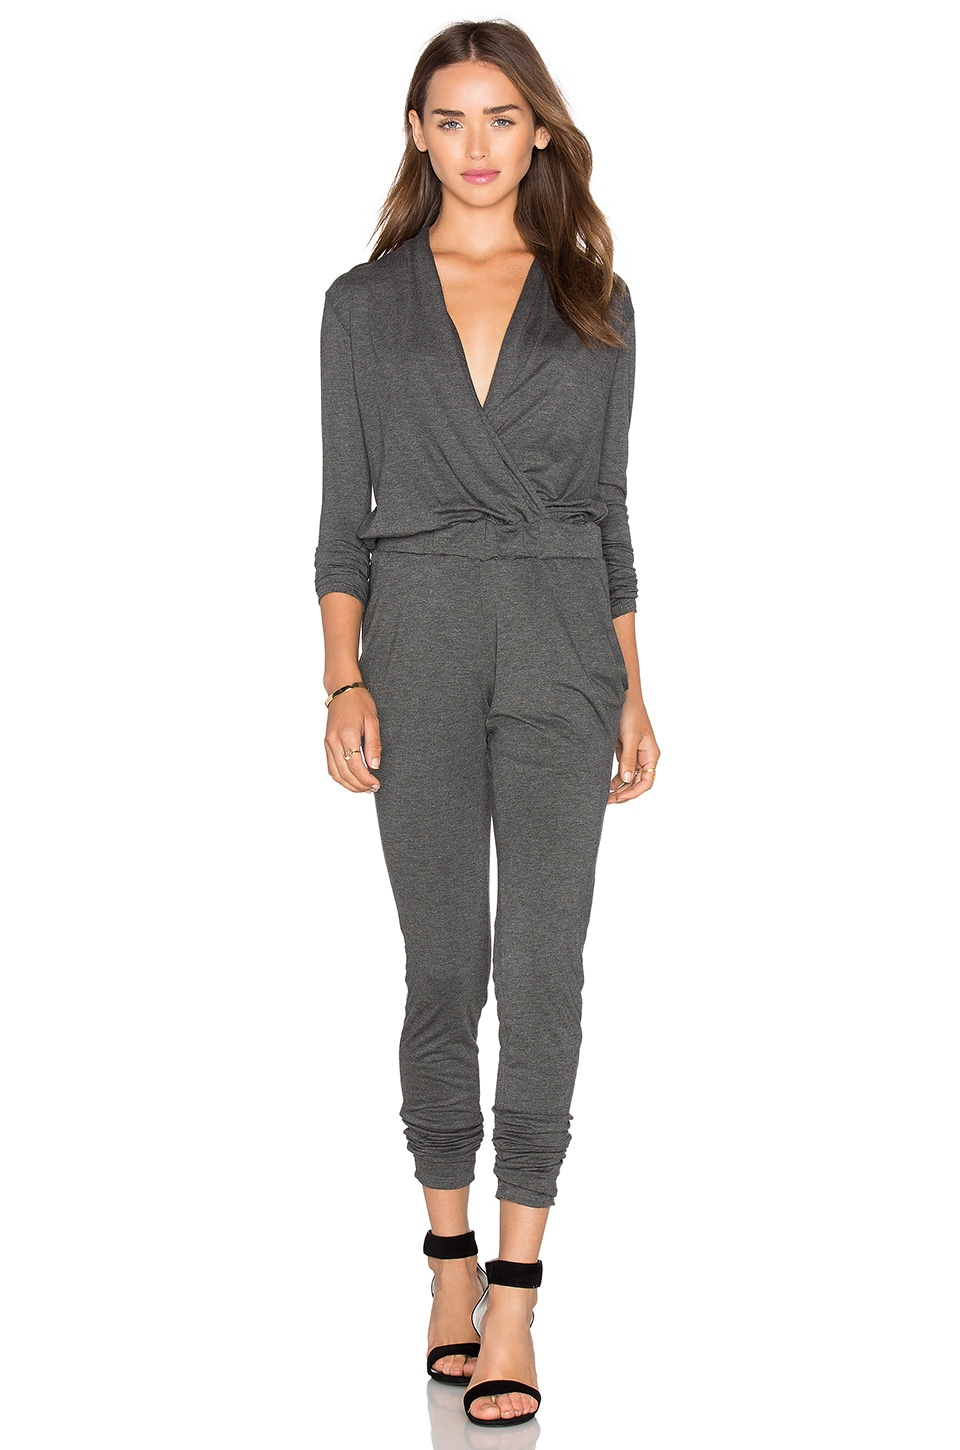 C&C California Ronnie Jumpsuit in Charcoal